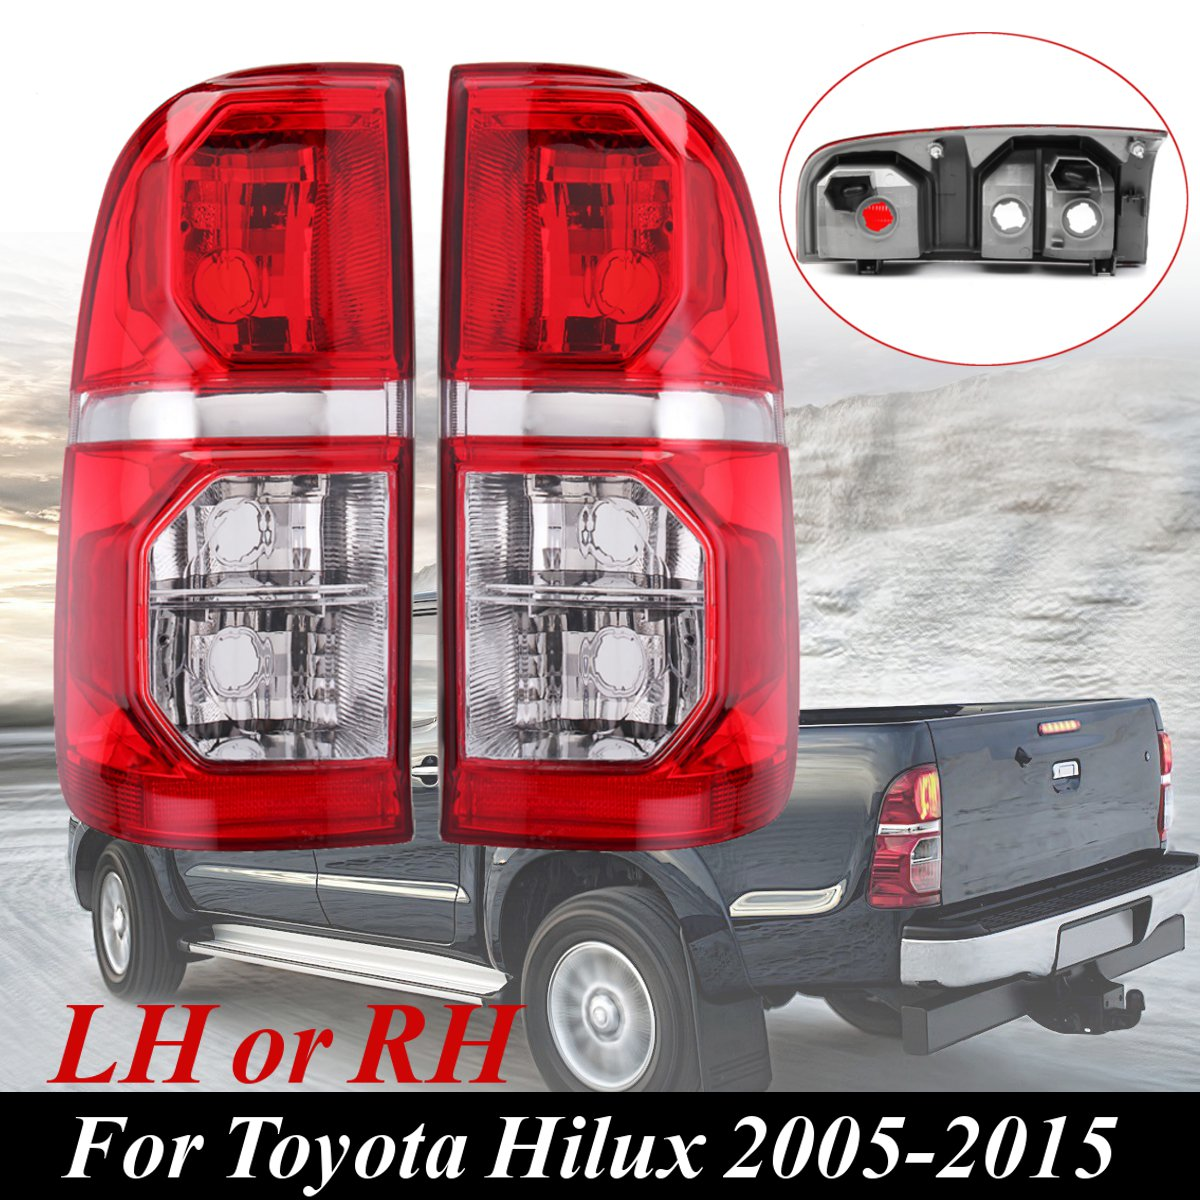 CL-RED REAR TAIL LIGHT LAMP LH FOR TOYOTA SOLUNA VIOS YARIS VITZ SEDAN 2007-2013